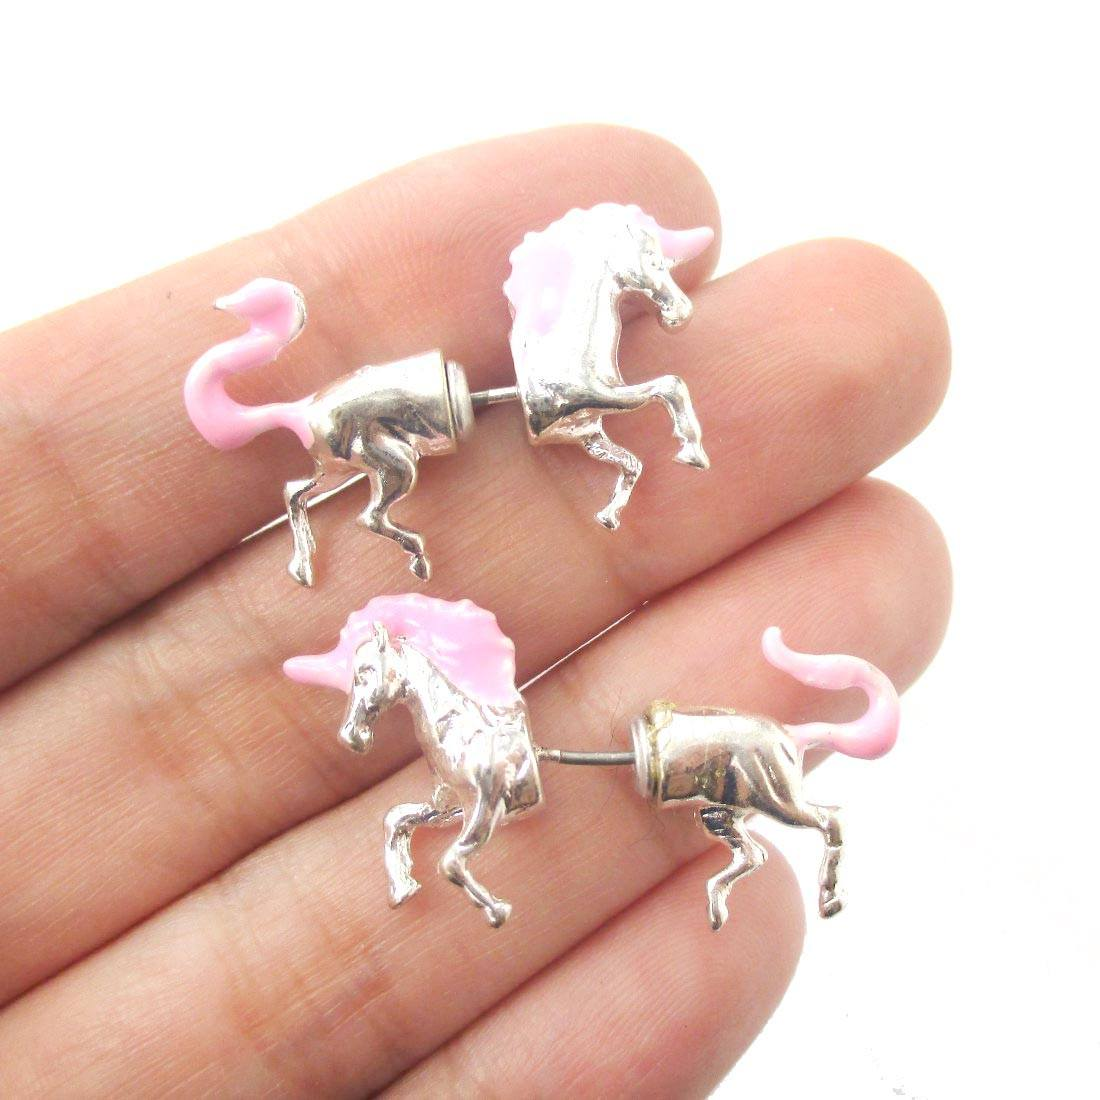 Unicorn Shaped Front and Back Two Part Earrings in Silver and Pink